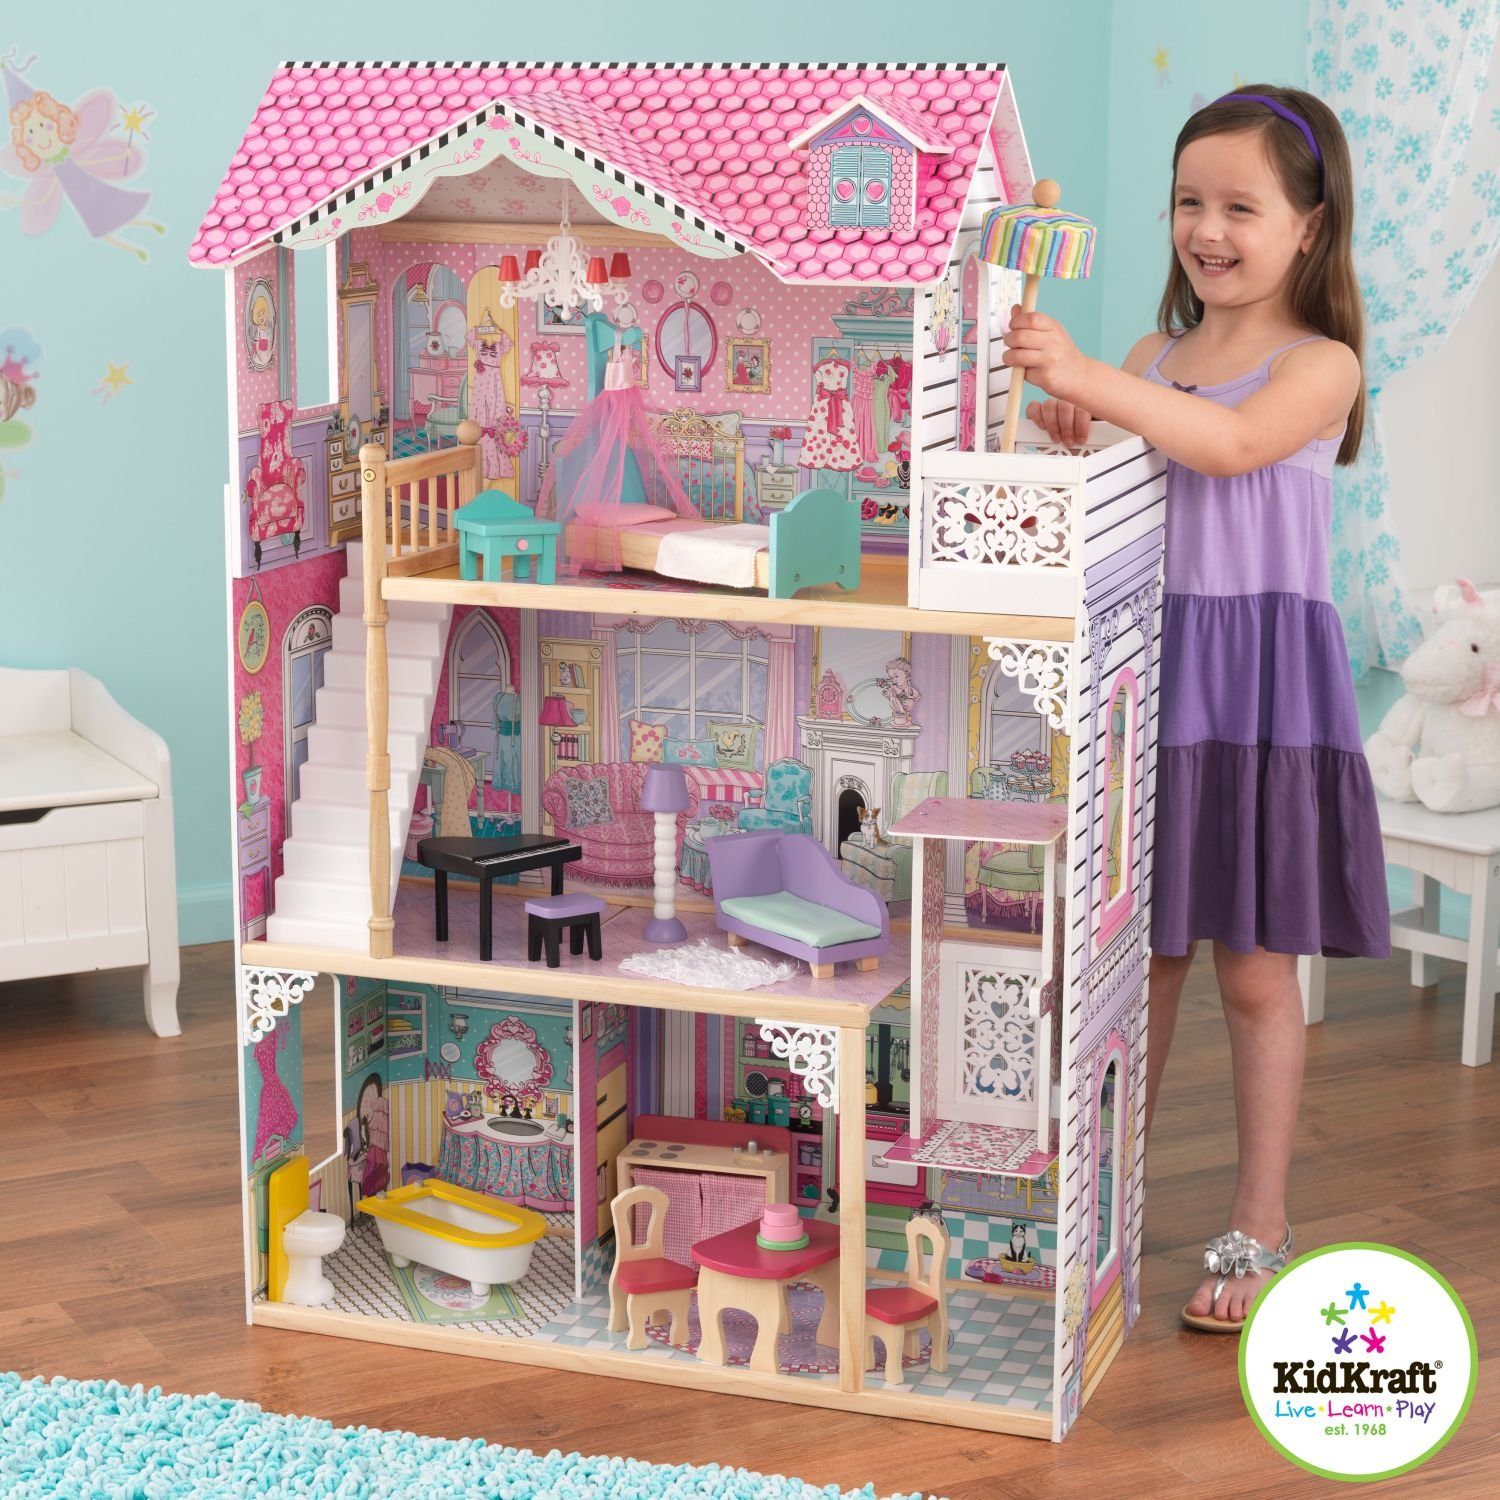 10 awesome barbie doll house models - 10 Awesome Barbie Doll House Models 30